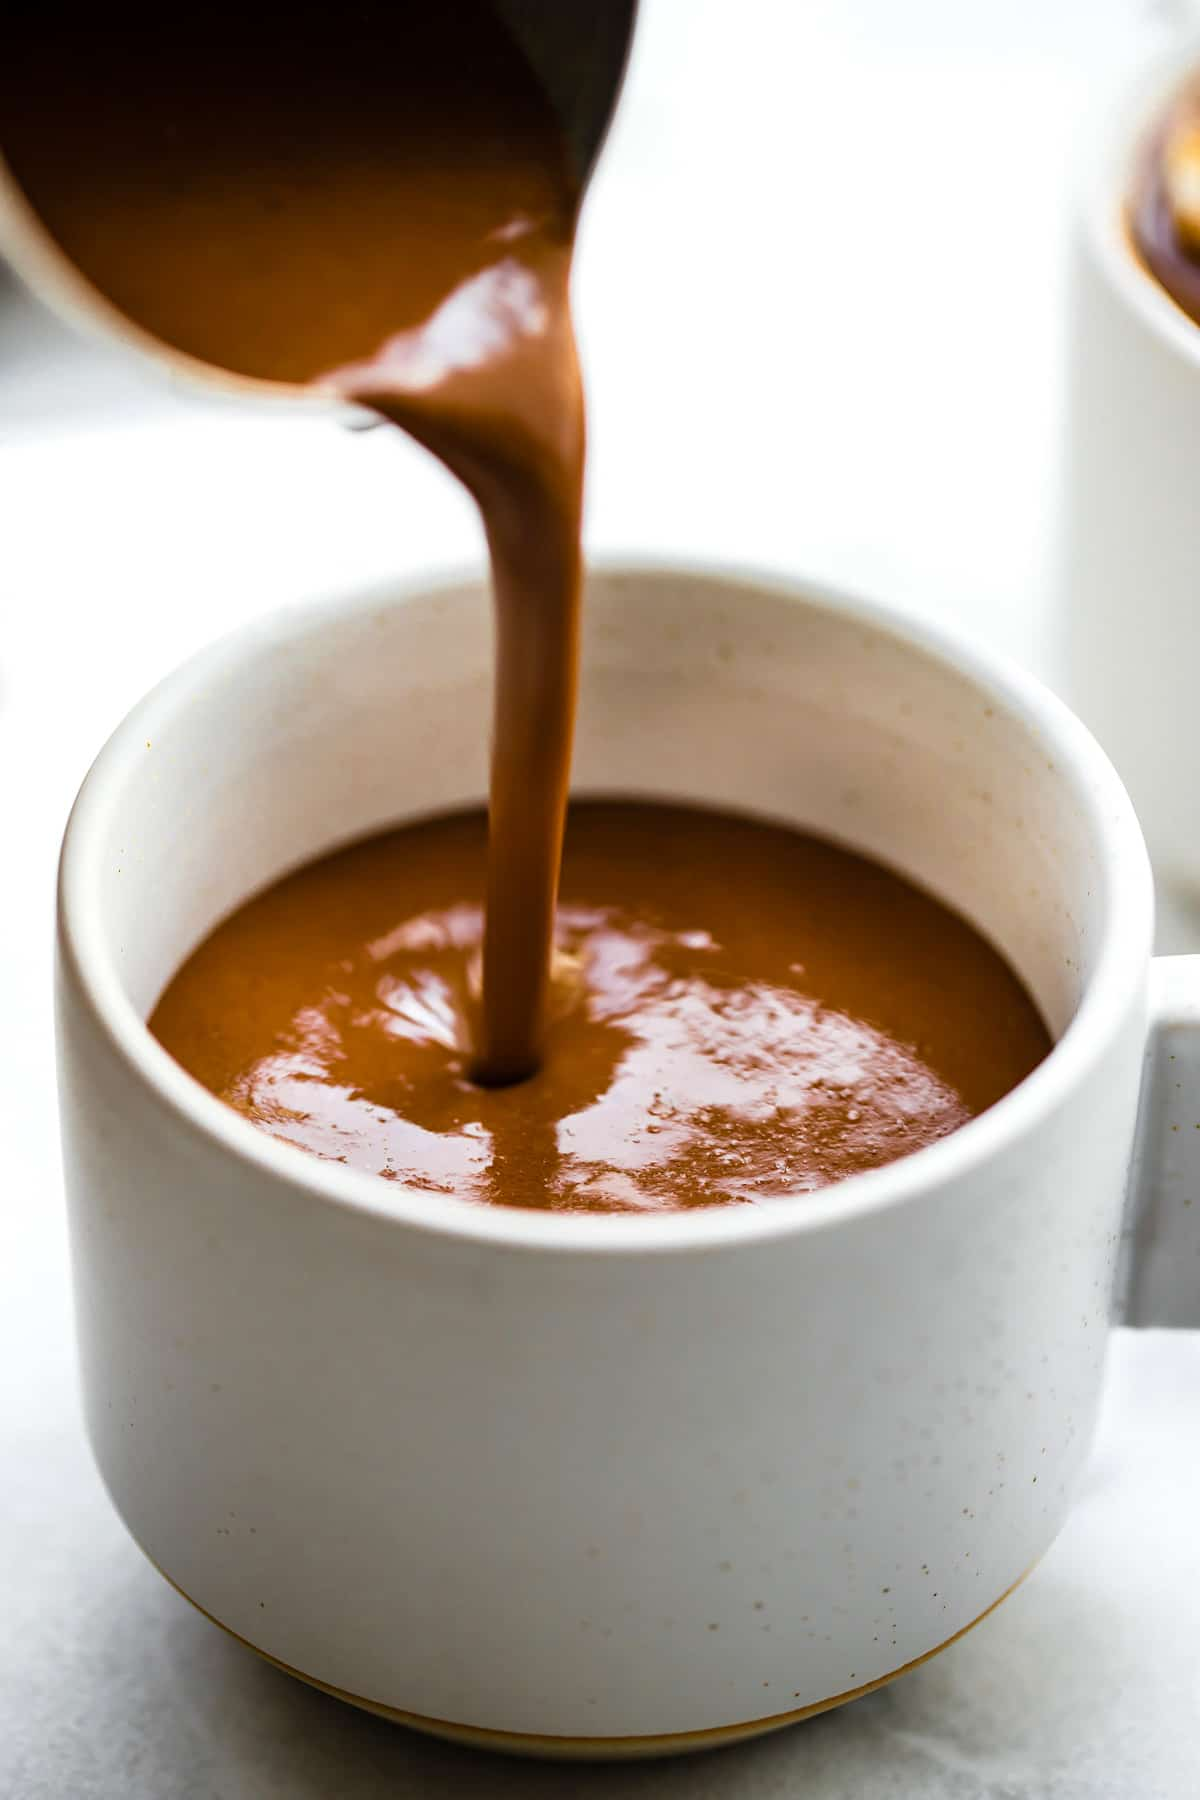 closeup: hot creamy drinking chocolate falling from ladle into a white mug